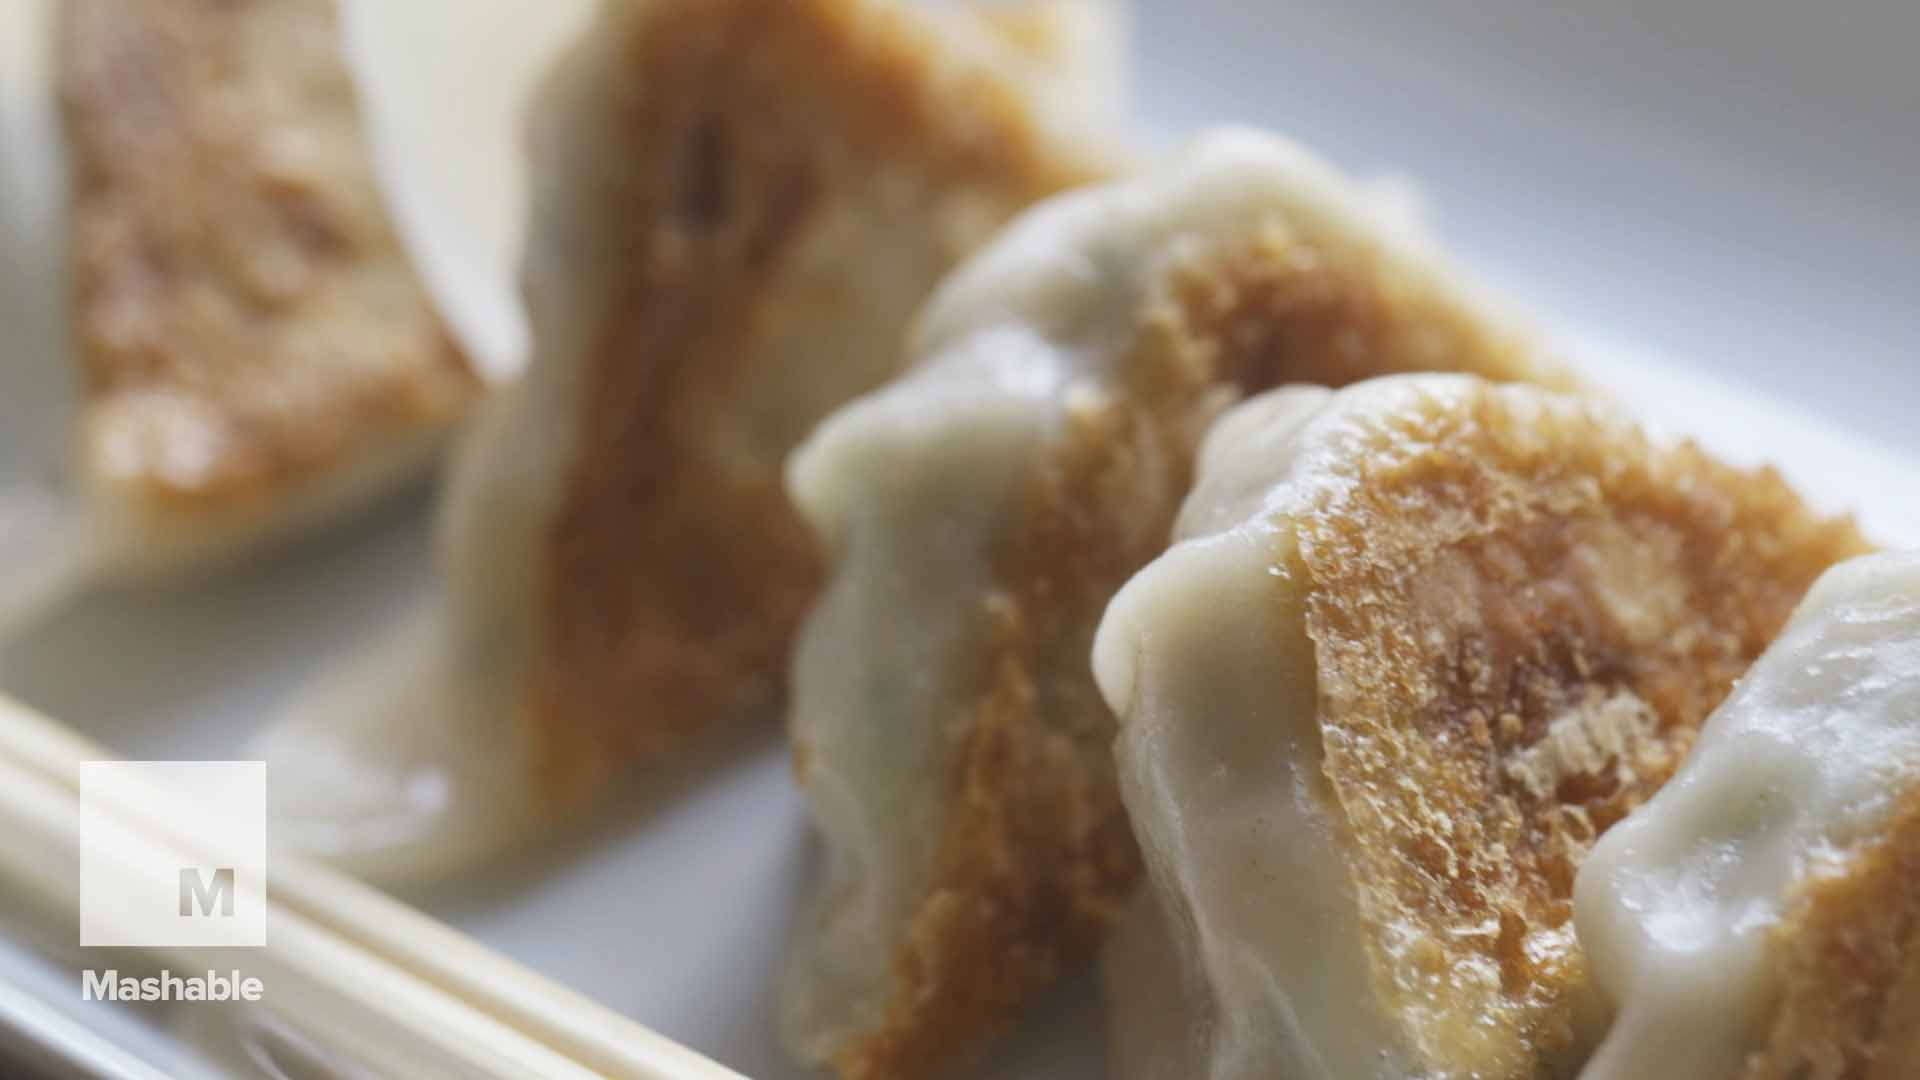 Ultimate Food Porn: How to Make Delectable Dumplings from Scratch